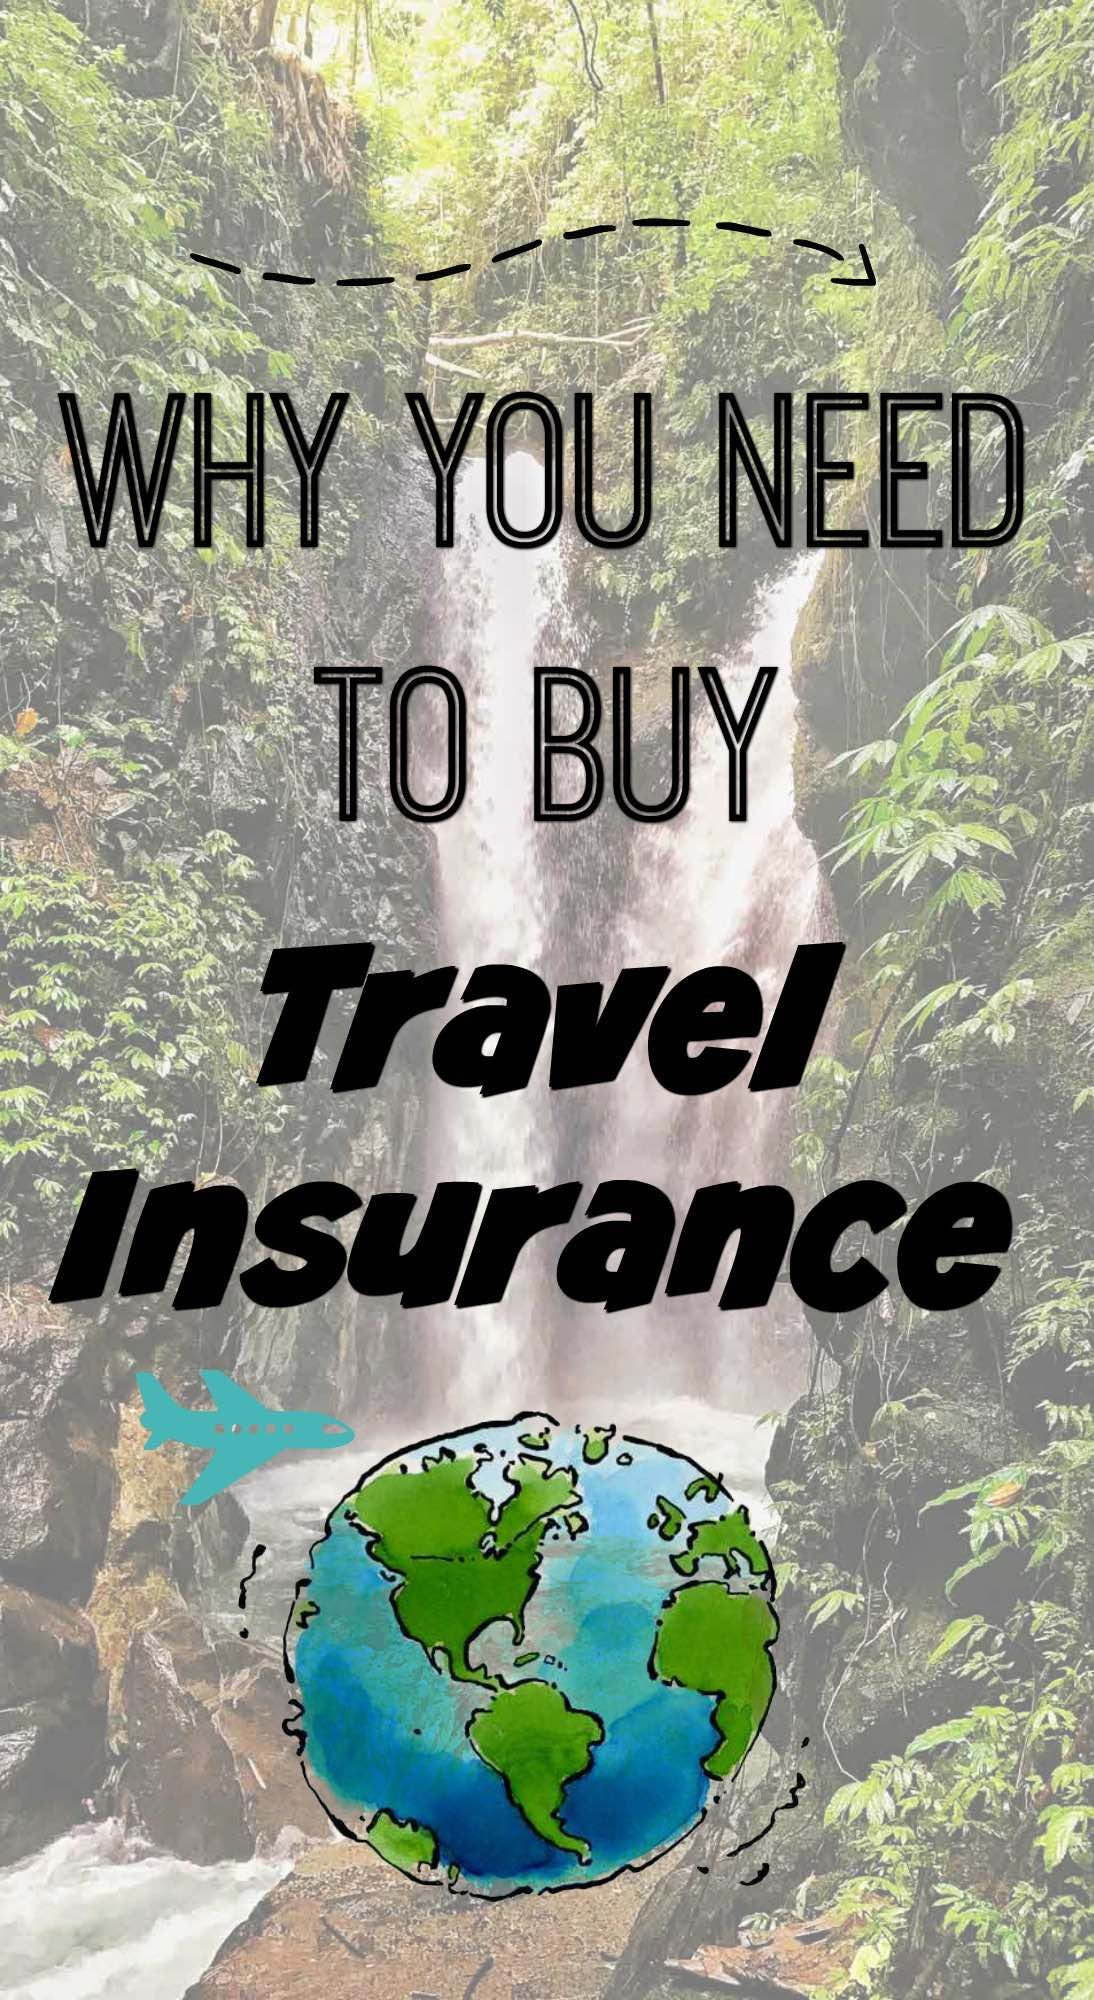 Why You Need to Buy Travel Insurance | Travel insurance ...